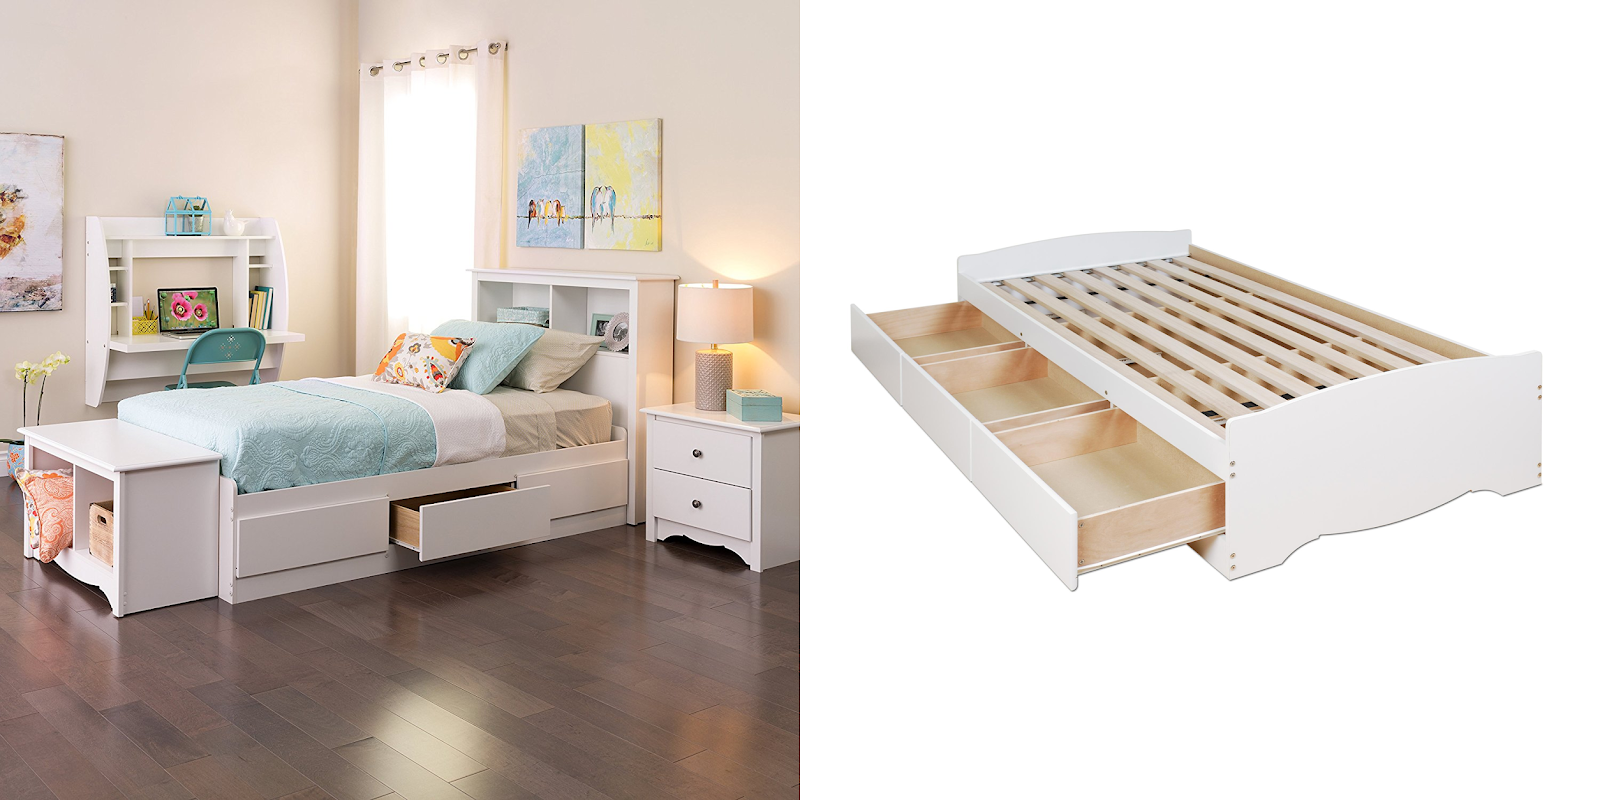 Head over to Amazon and get this Prepac White Twin Mateu0027s Platform Storage Bed with 3 Drawers on sale for $132 (Reg. $336.16). The drawer run on smooth ...  sc 1 st  qpanion & $132 (Reg. $336.16) + Free Ship Prepac White Twin Mateu0027s Platform ...